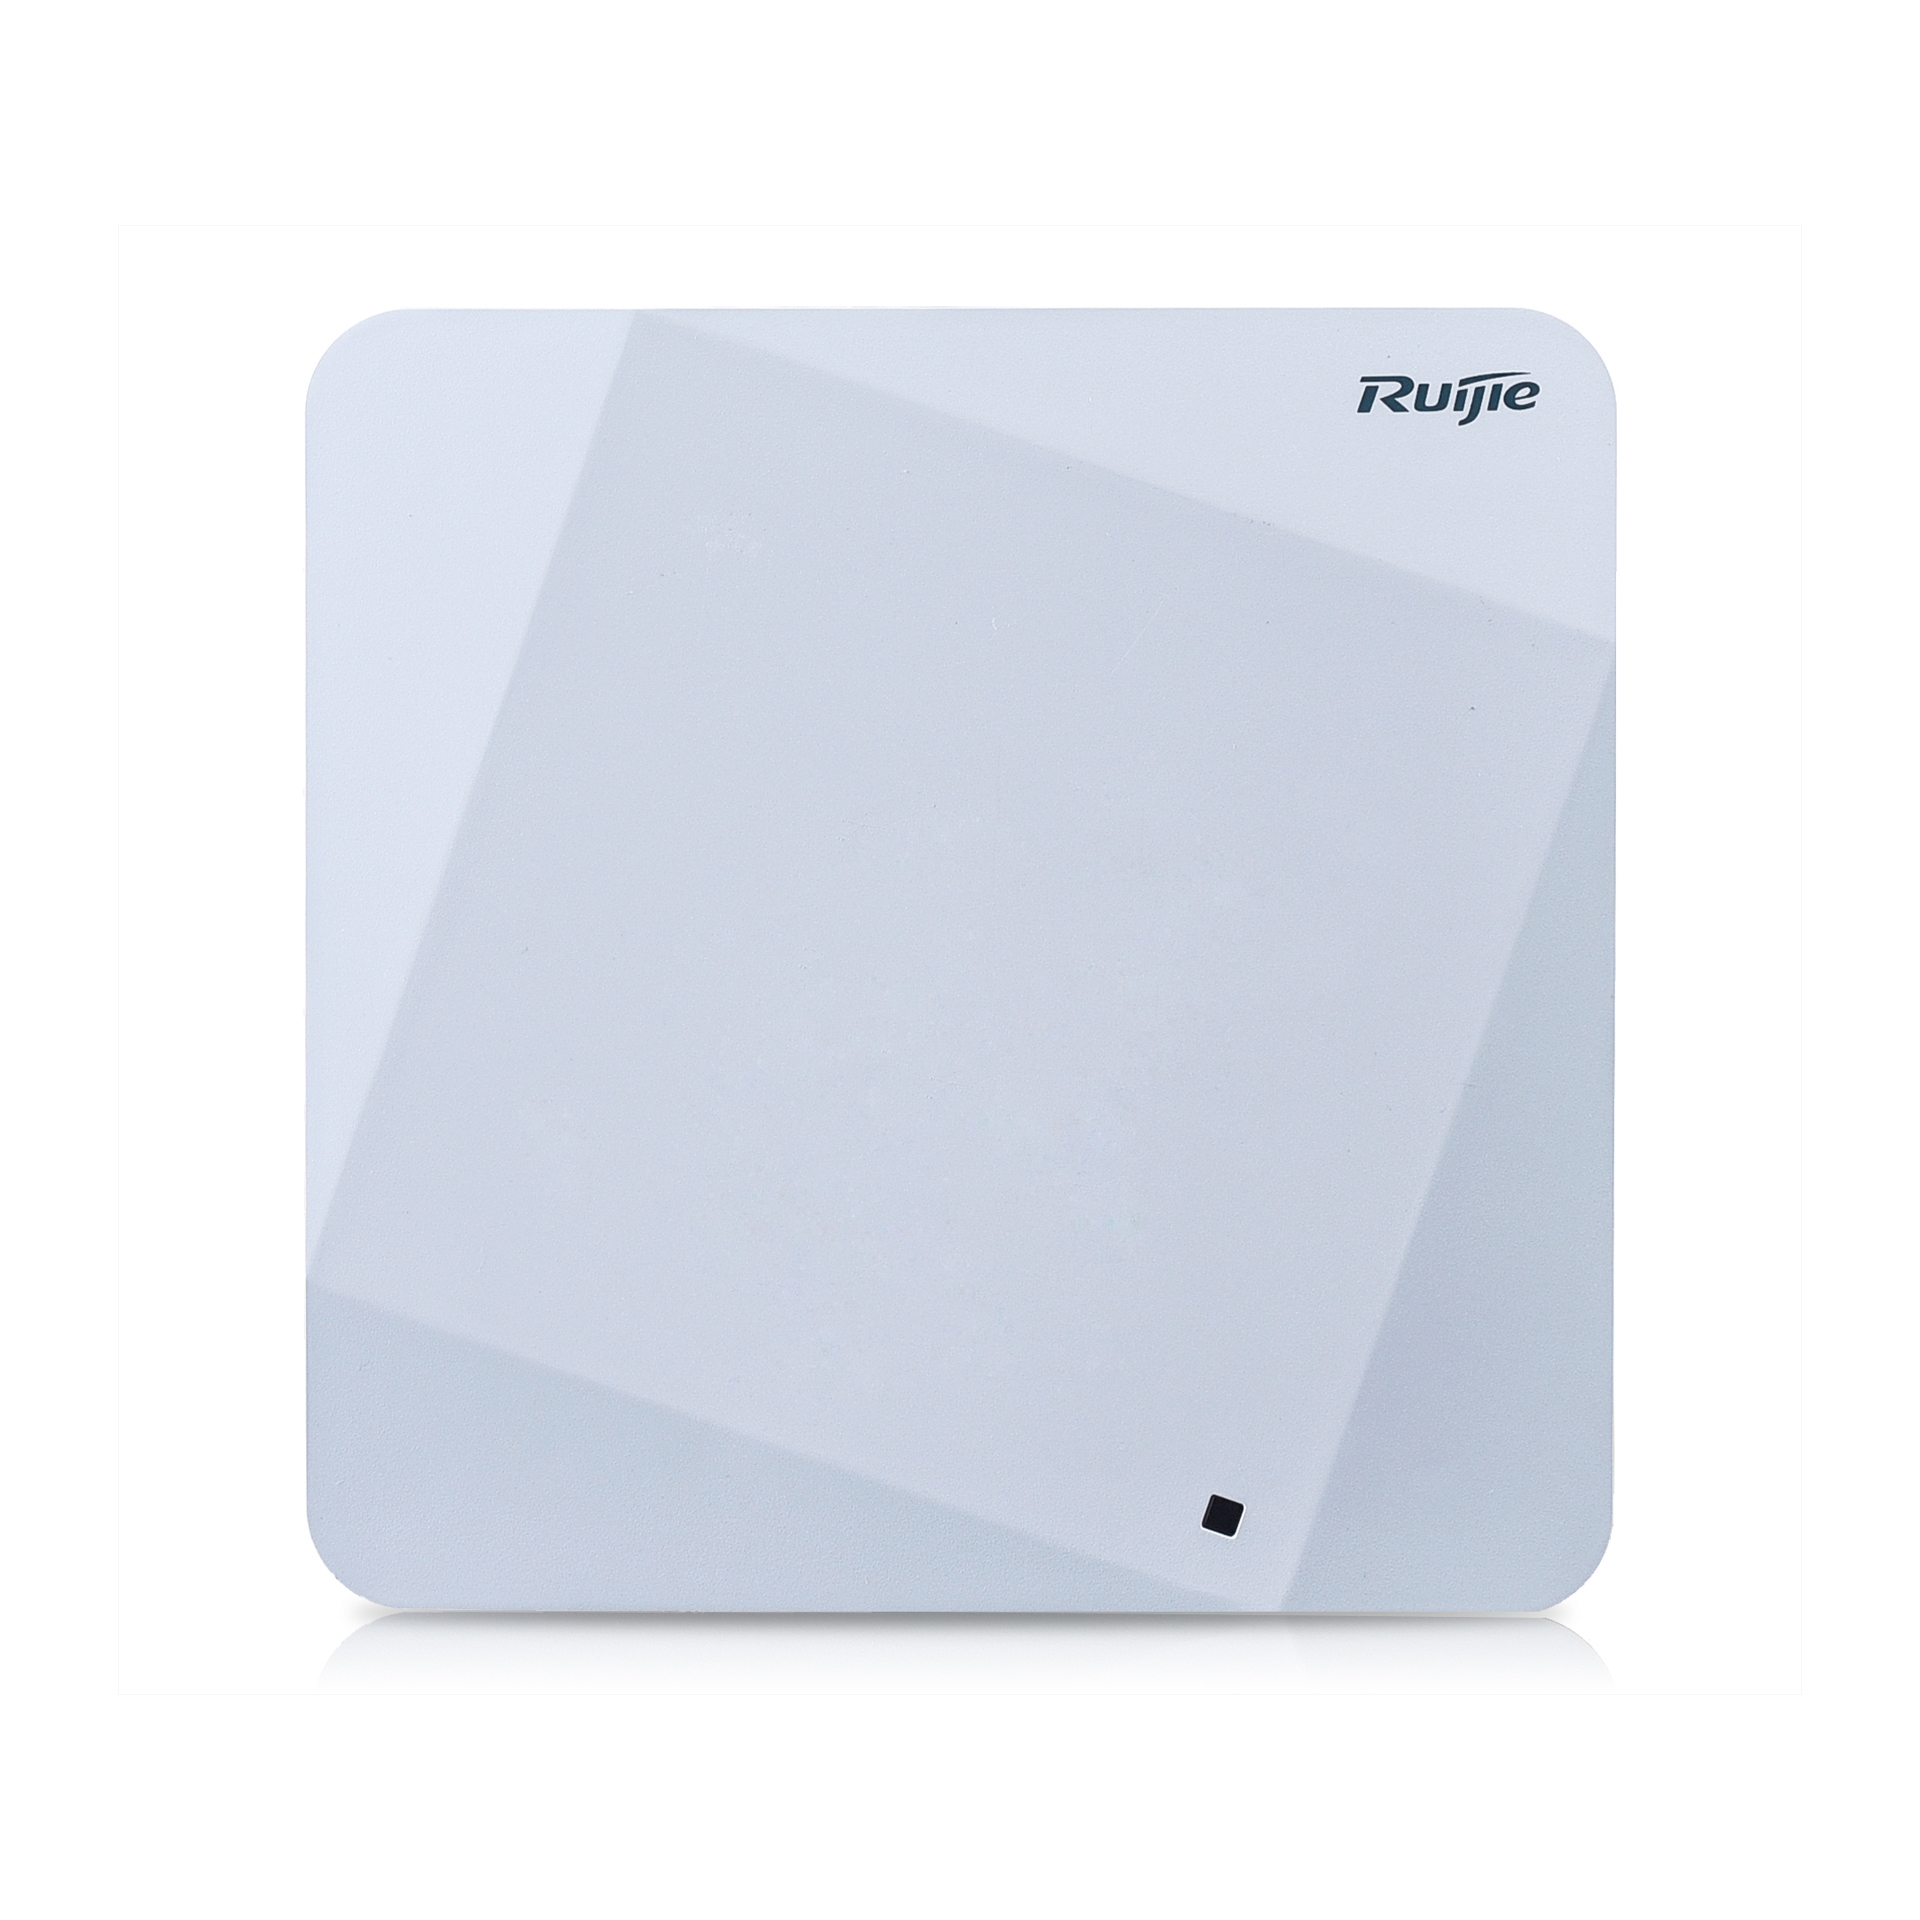 RUIJIE RG-AP710 1167MBPS 1PORT 2x2MIMO 2.4 GHZ & 5 GHZ INDOOR ACCESS POINT